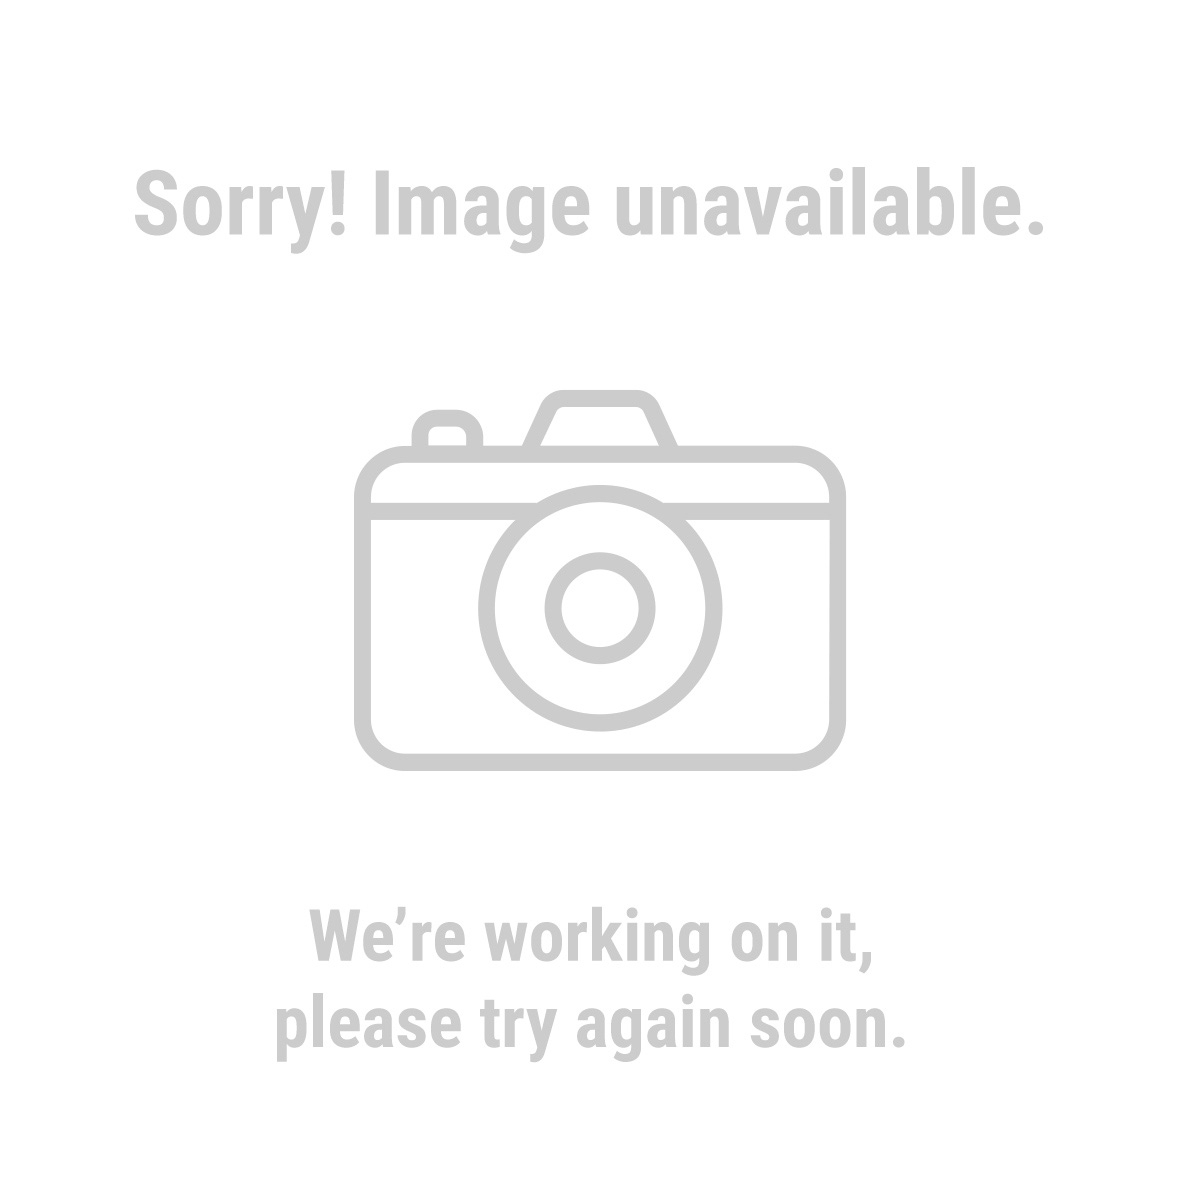 Le Meilleur Door Window Entry Alarm Ce Mois Ci